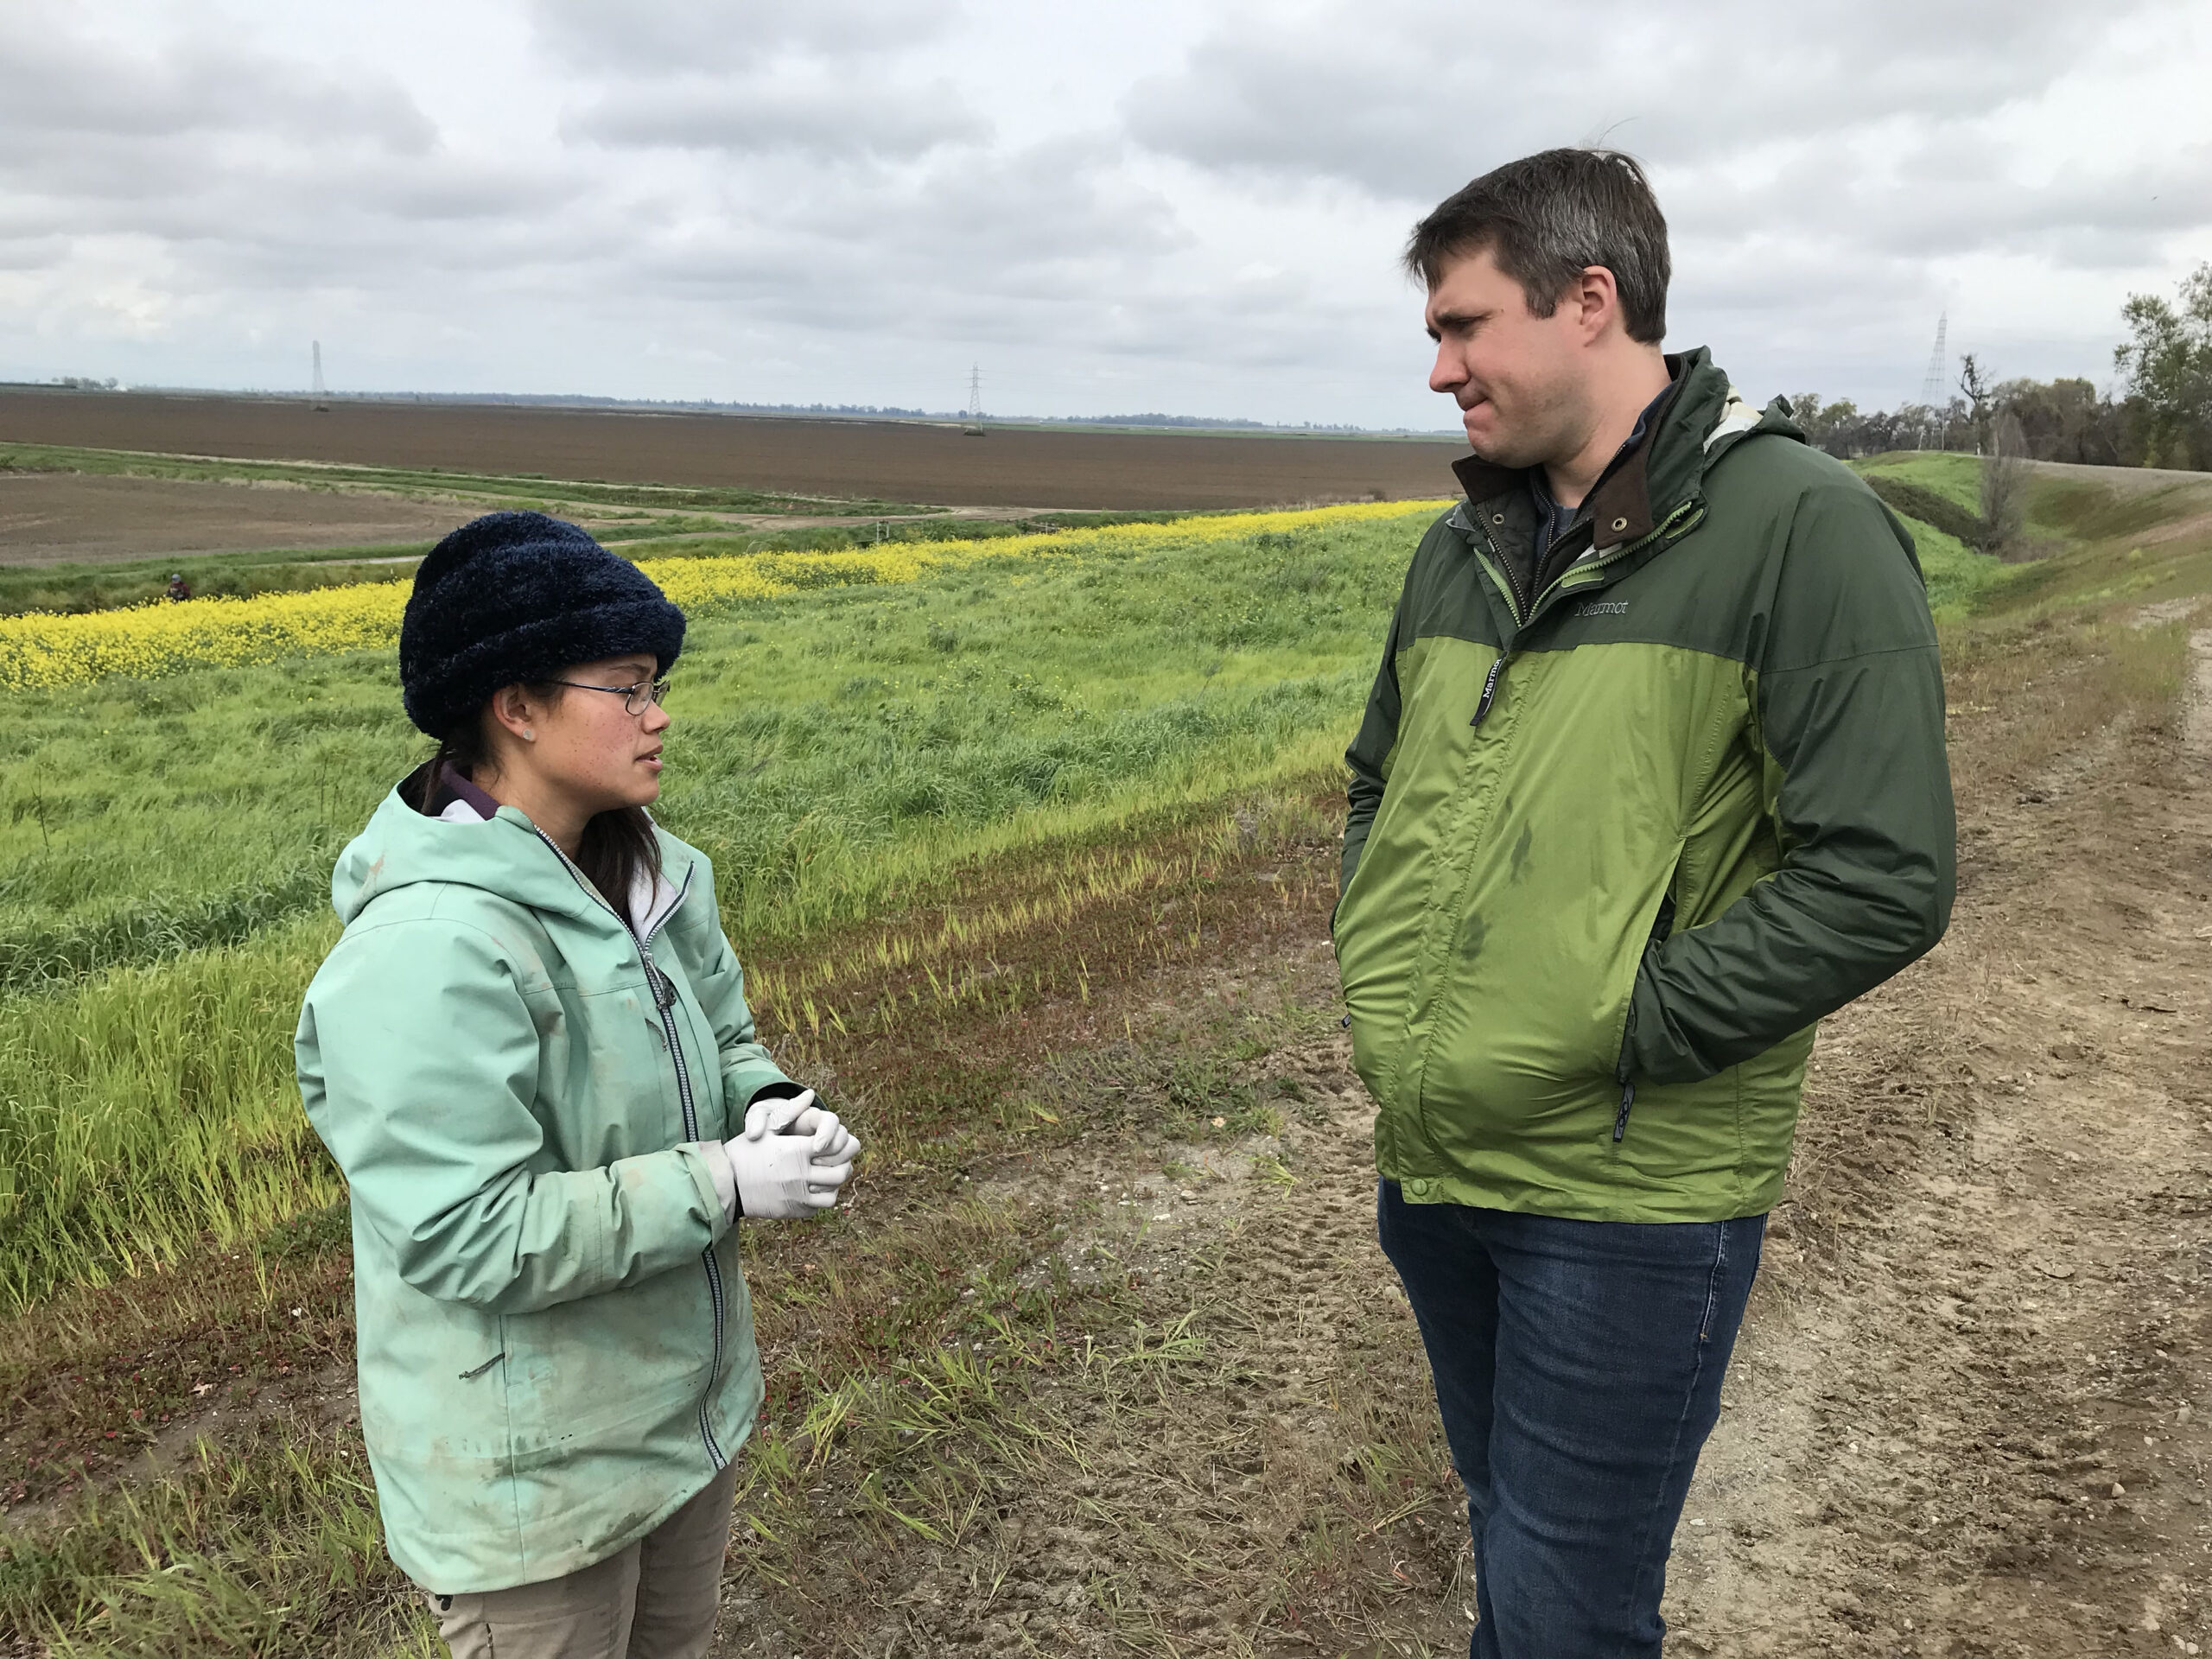 UC Davis Professor Andrew Rypel and Rachelle Tallman (UC Davis) confer about the day's JSAT tagging activities